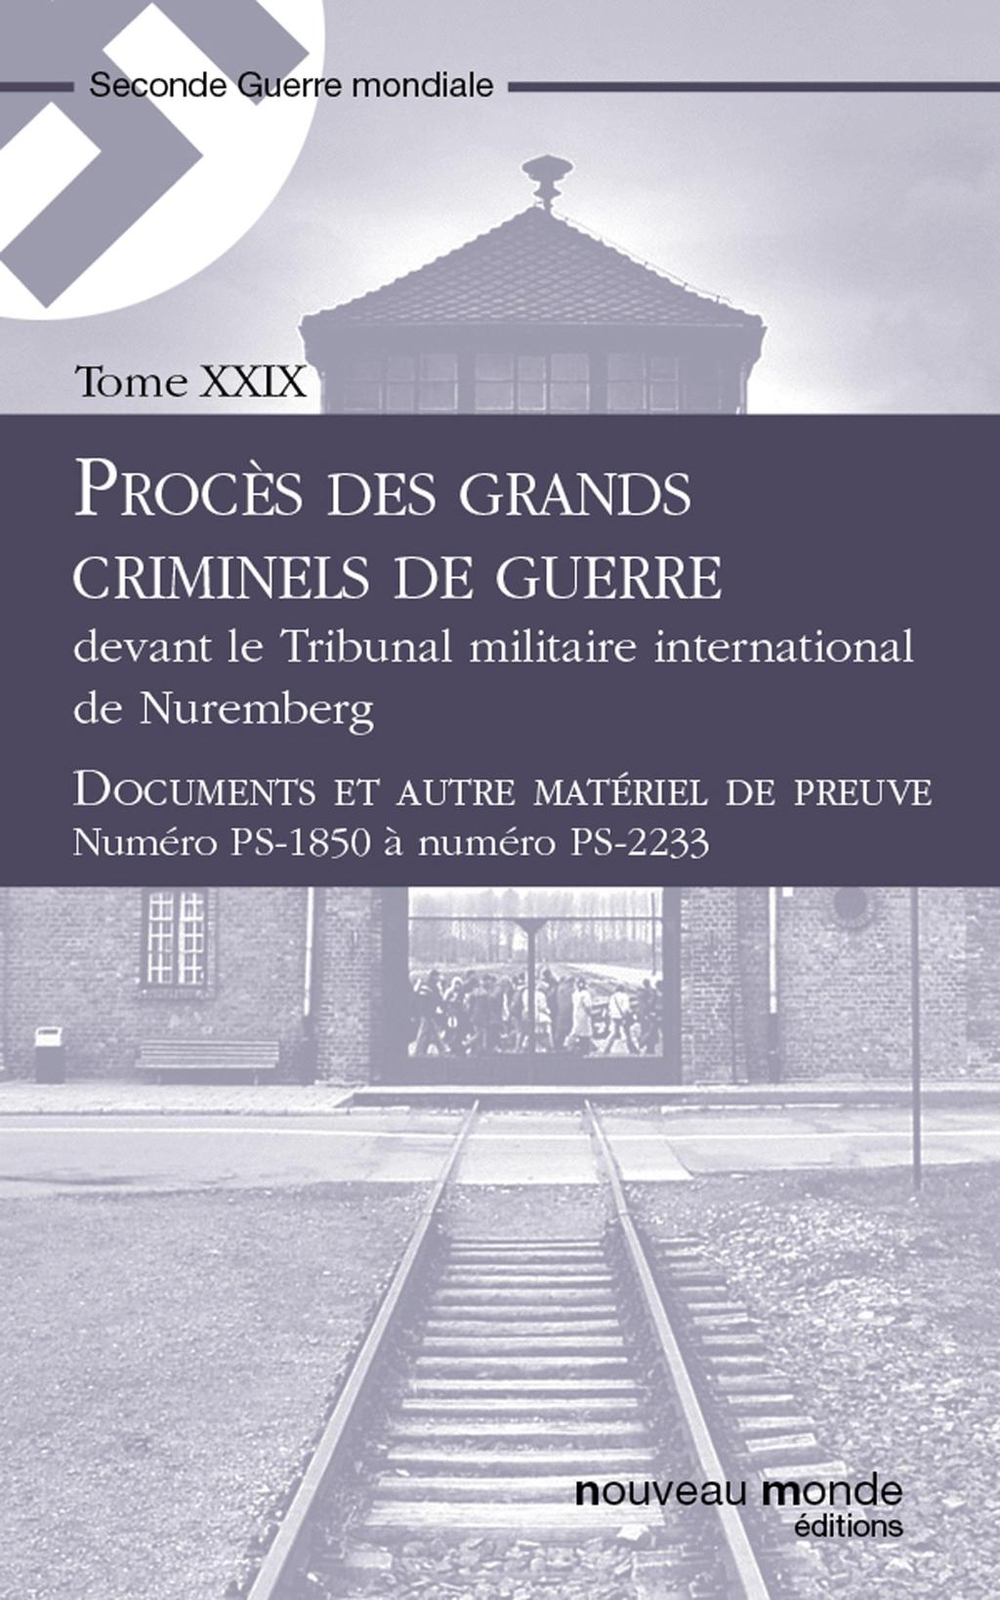 Procès des grands criminels de guerre devant le Tribunal militaire international de Nuremberg, Tome